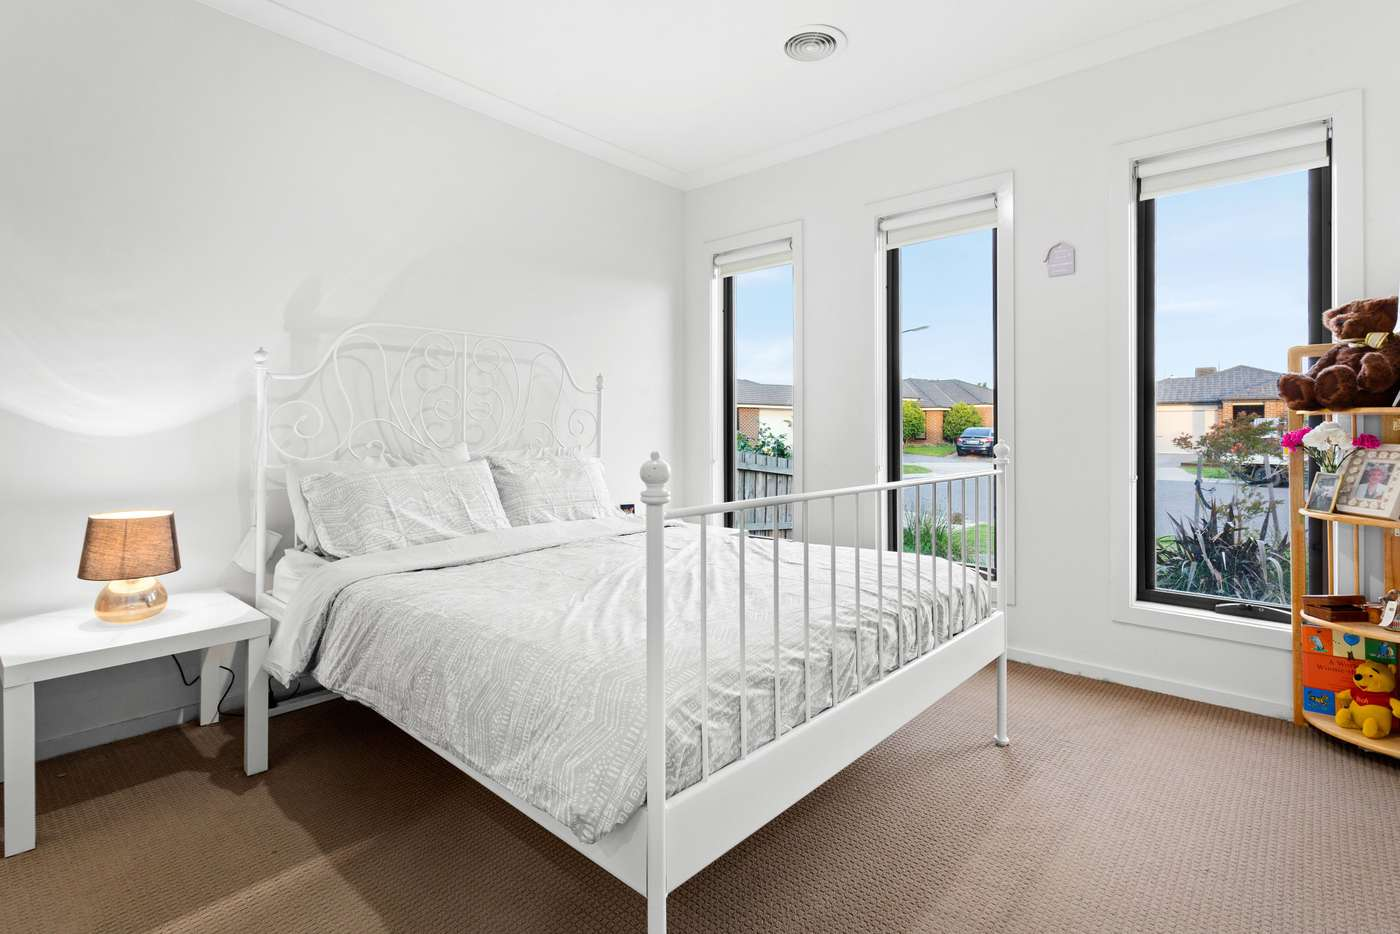 Fifth view of Homely house listing, 3 Pipit Close, Pakenham VIC 3810